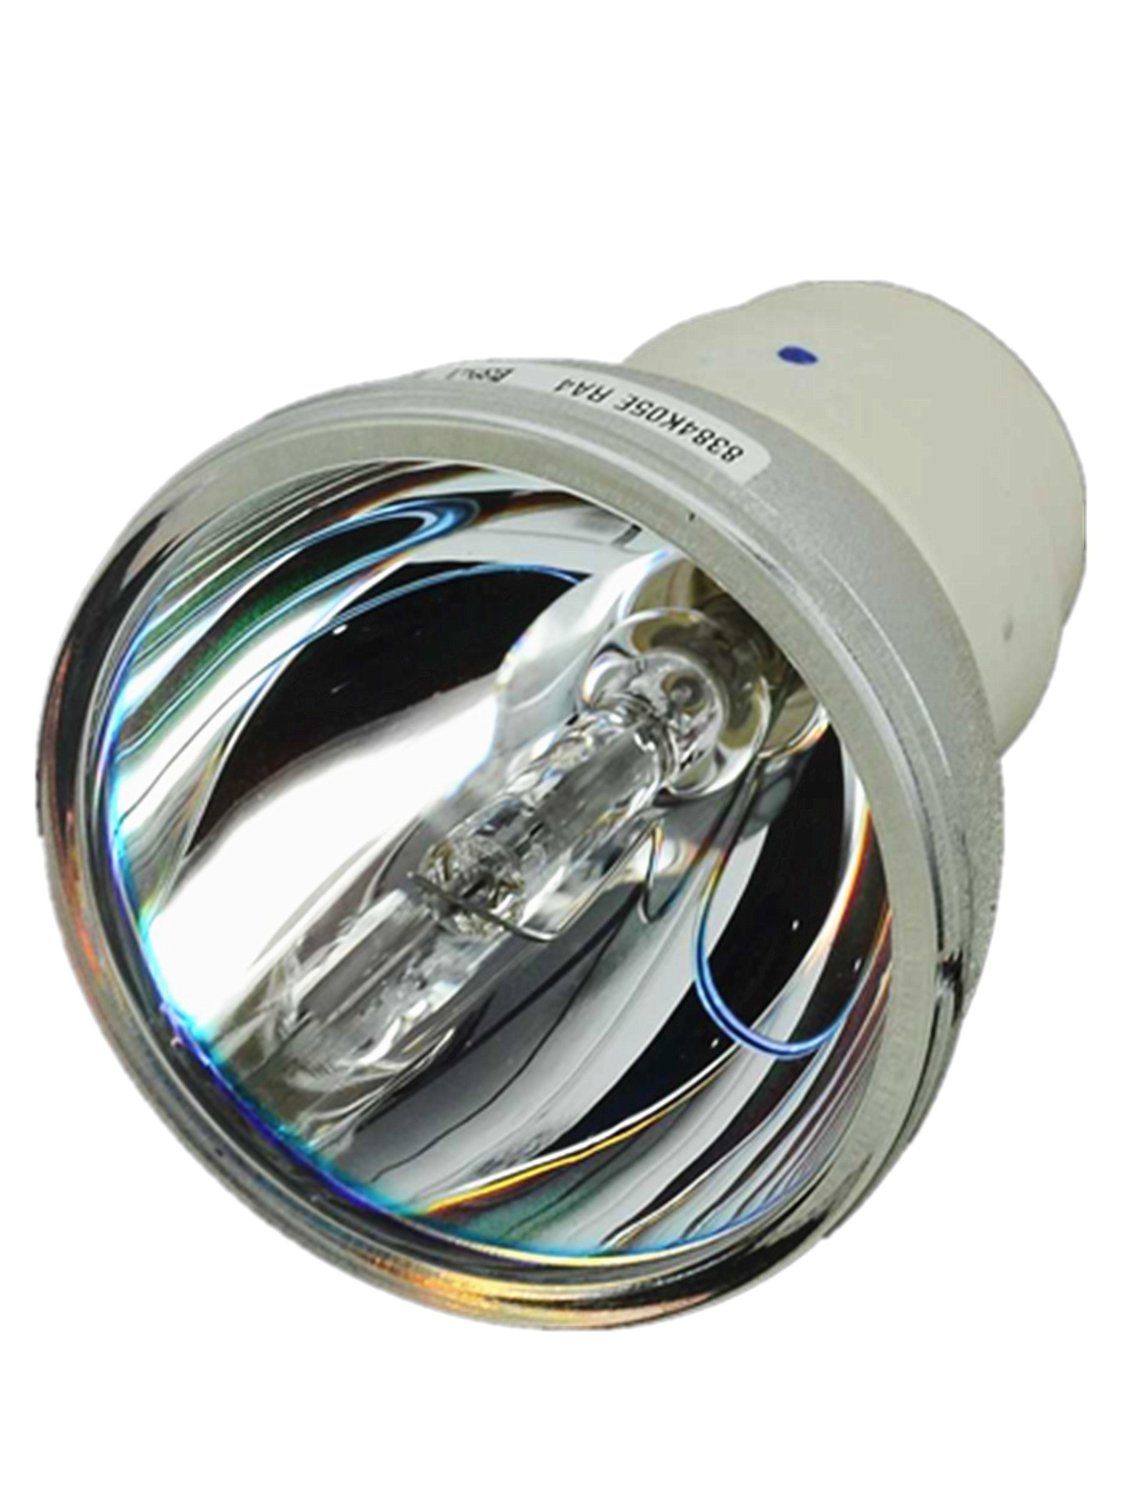 Compatible Bare Bulb EC.JD700.001 for Acer P1120 P1220 P1320W P1320H Projector Bulbs Lamp without housing compatible bare bulb ec j0300 001 for acer pd113 projector bulb lamp without housing free shipping